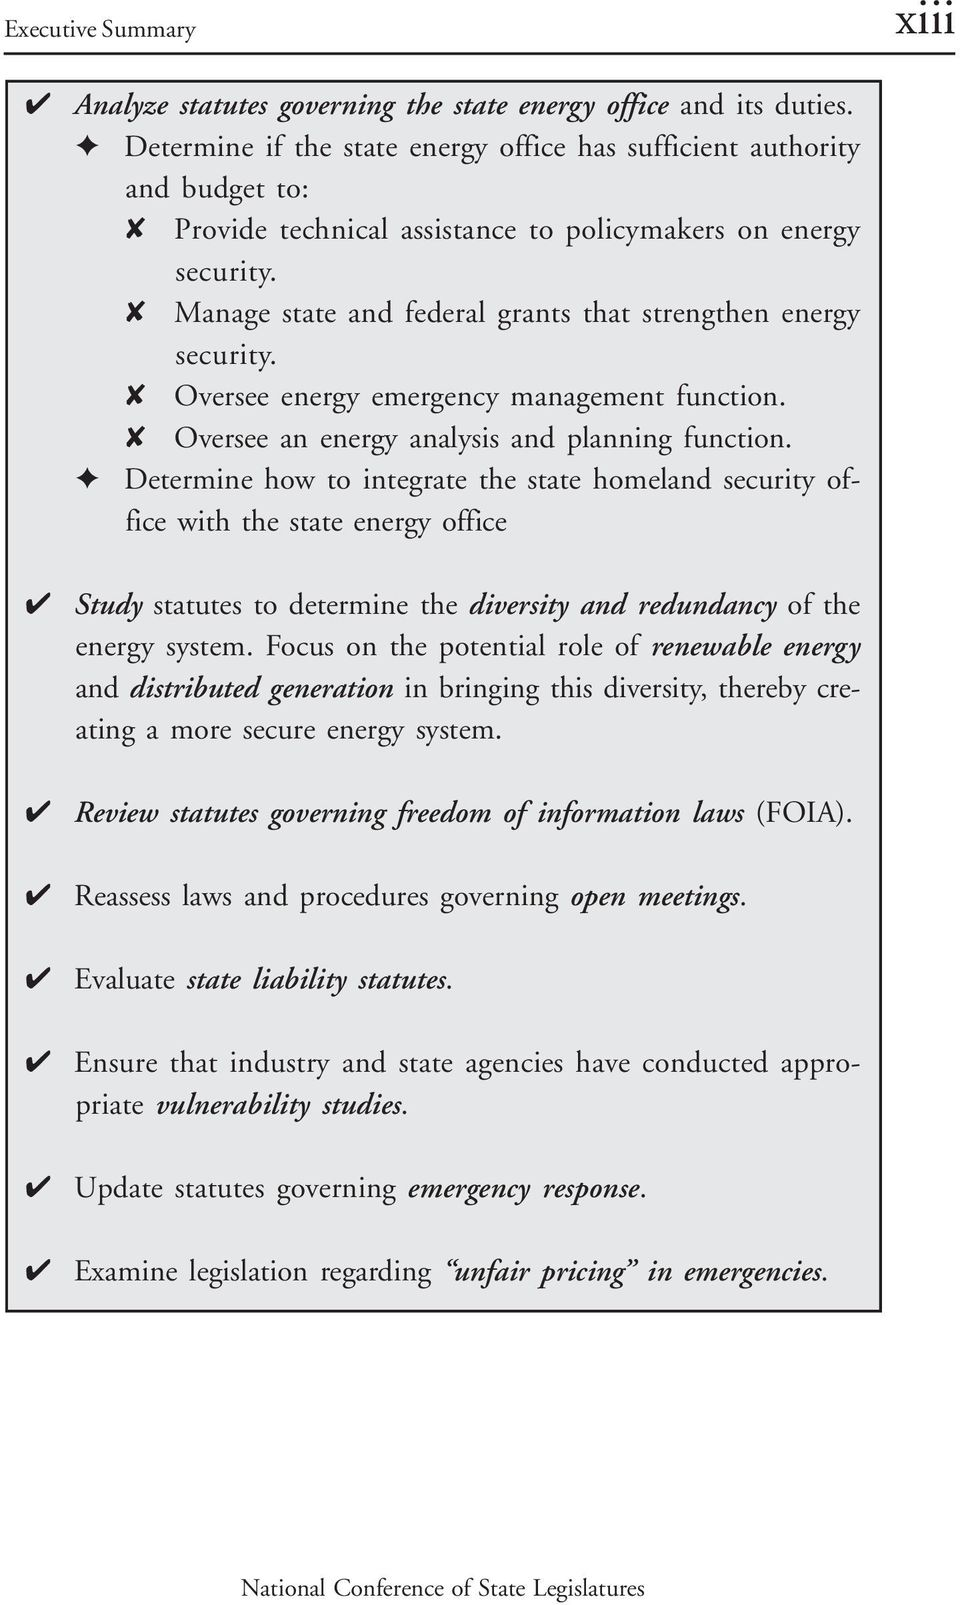 Manage state and federal grants that strengthen energy security. Oversee energy emergency management function. Oversee an energy analysis and planning function.